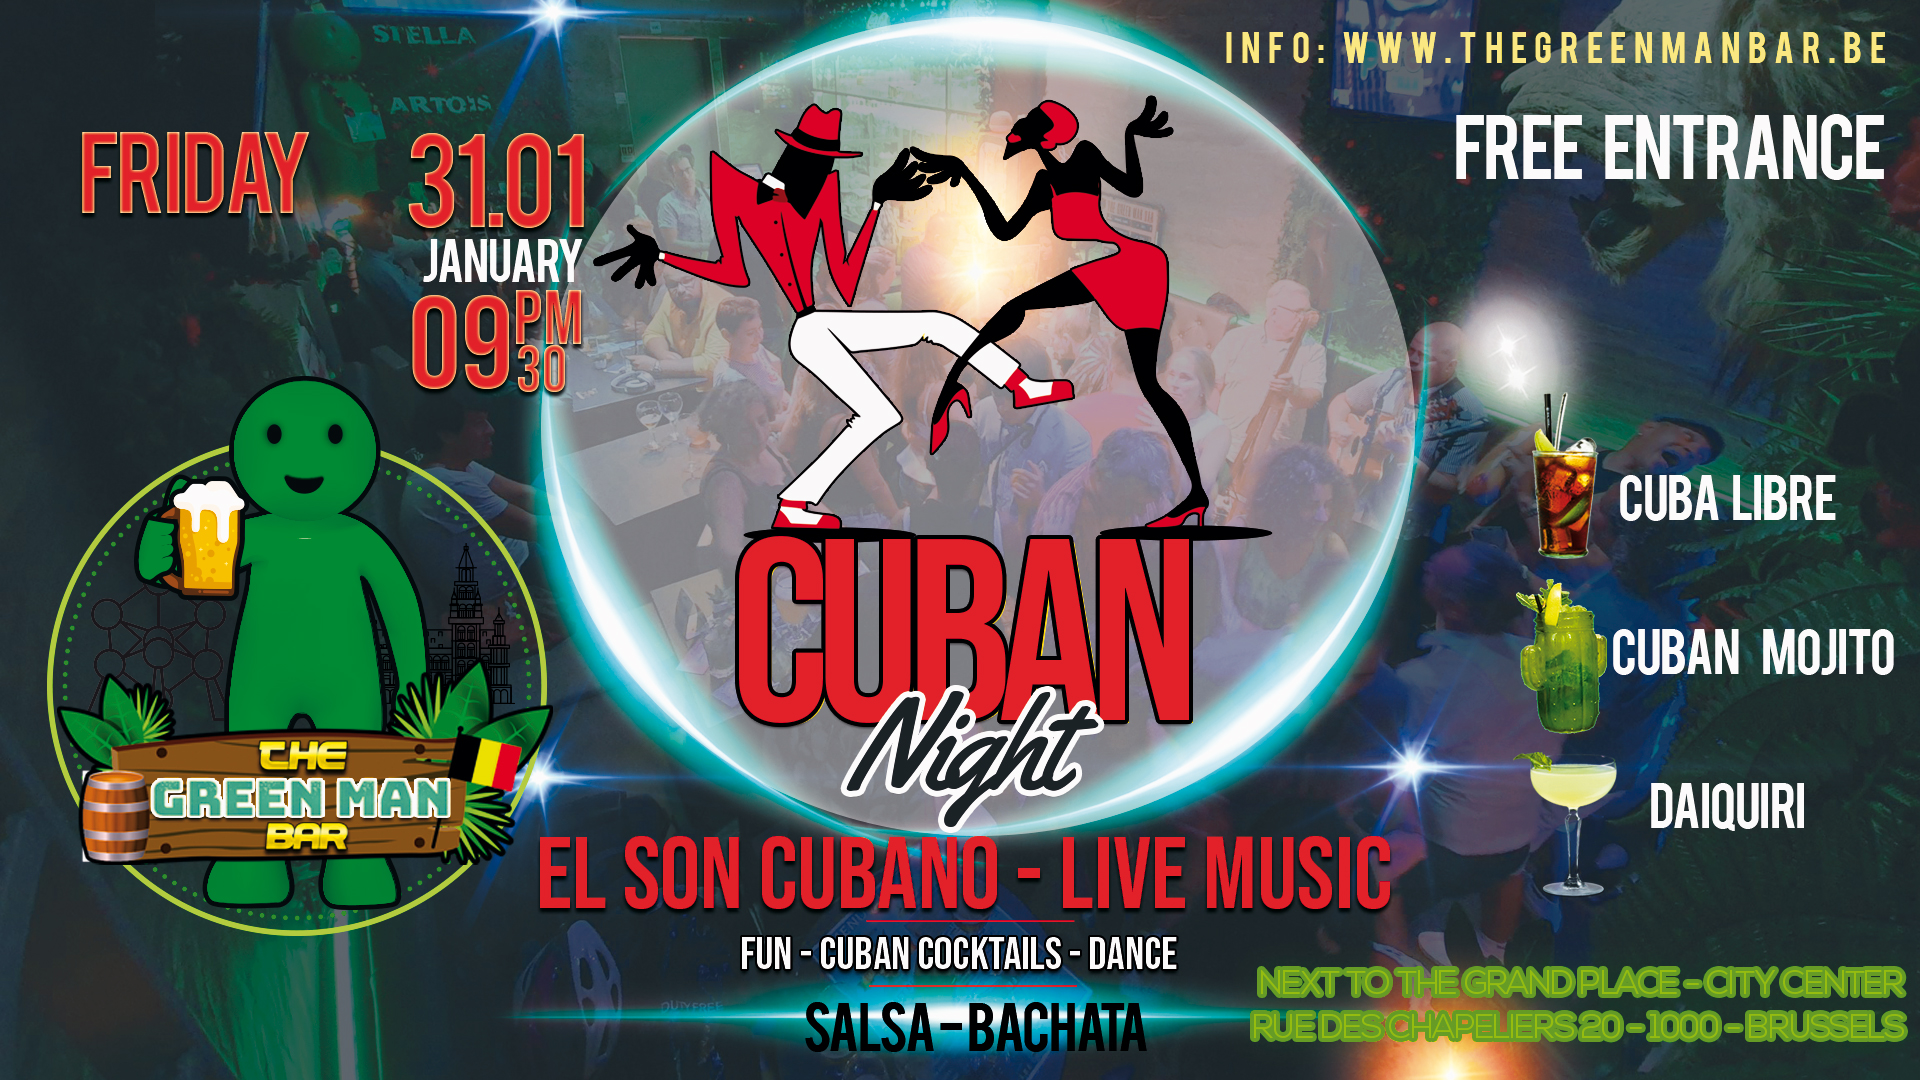 El Son Cubano – Cuban Live Music – Friday 31 January 9.30 PM